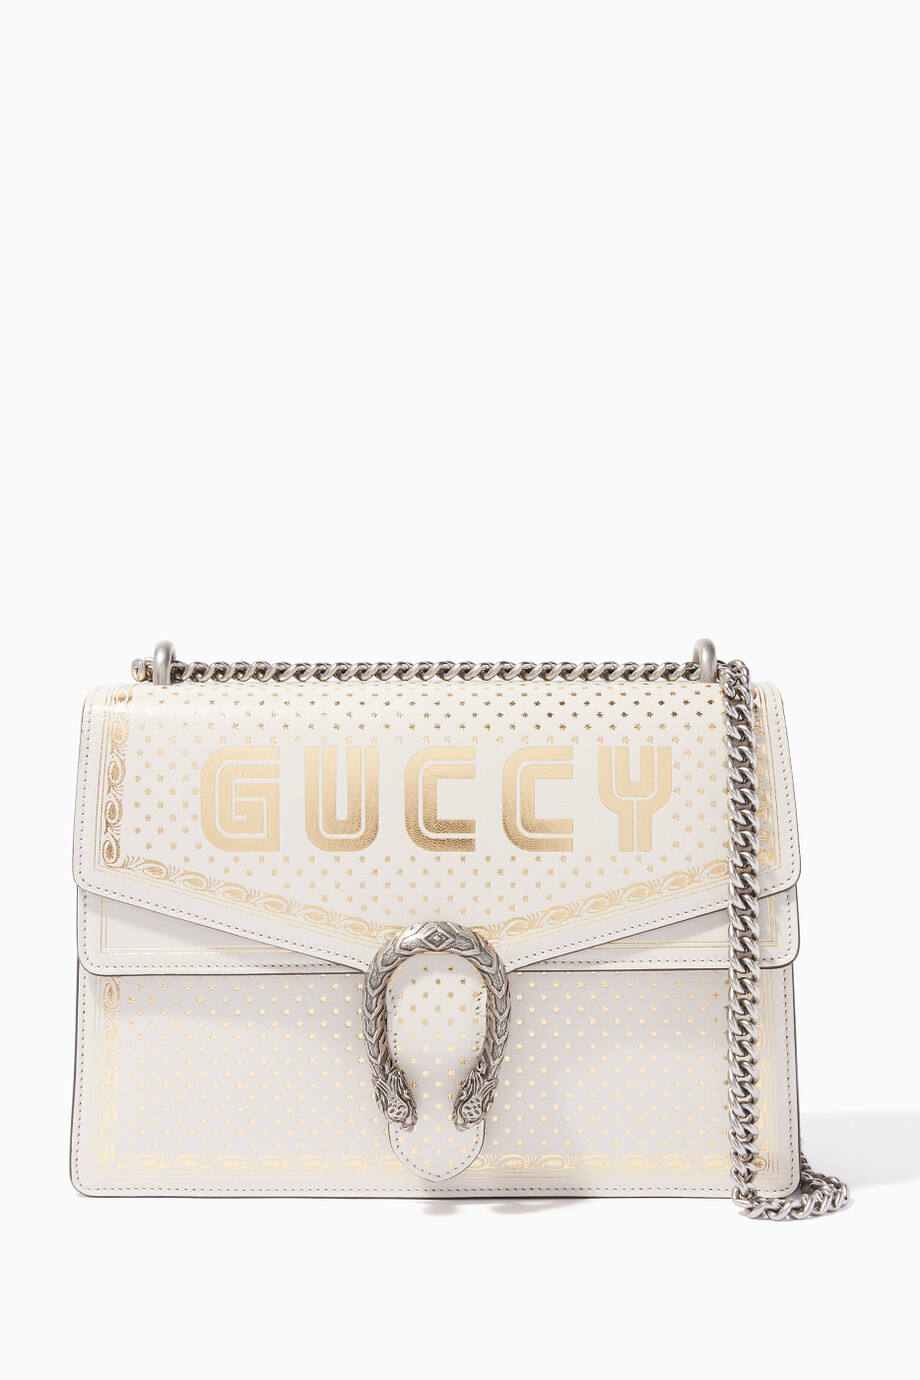 265fb0d7808 Shop Gucci White White Guccy Dionysus Medium Shoulder Bag for Women ...